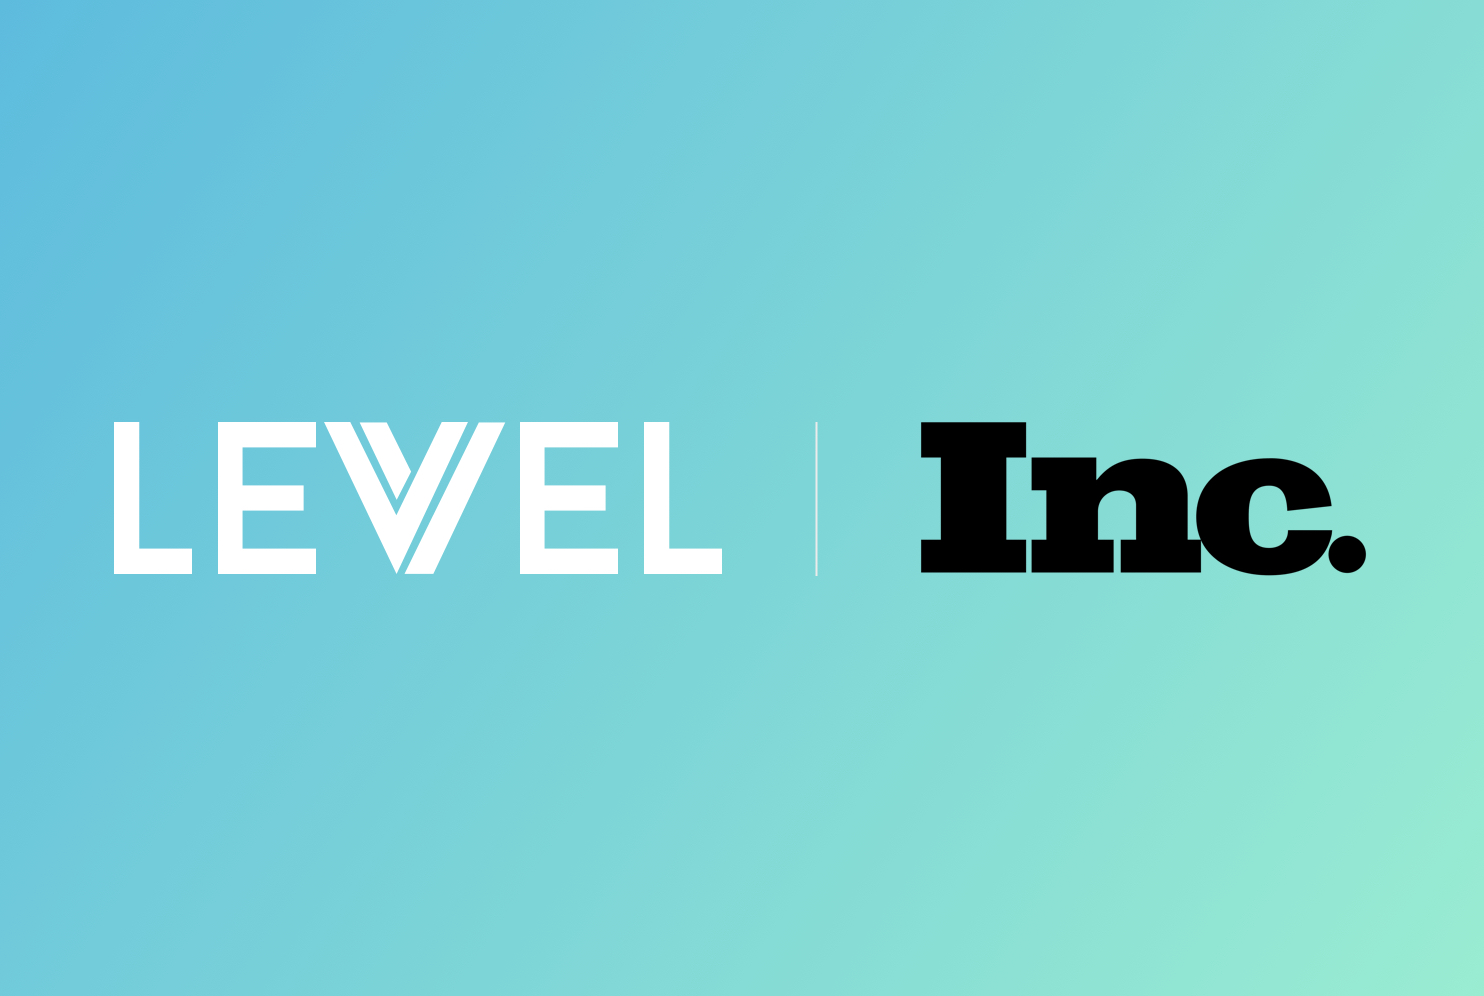 Levvel and Inc.